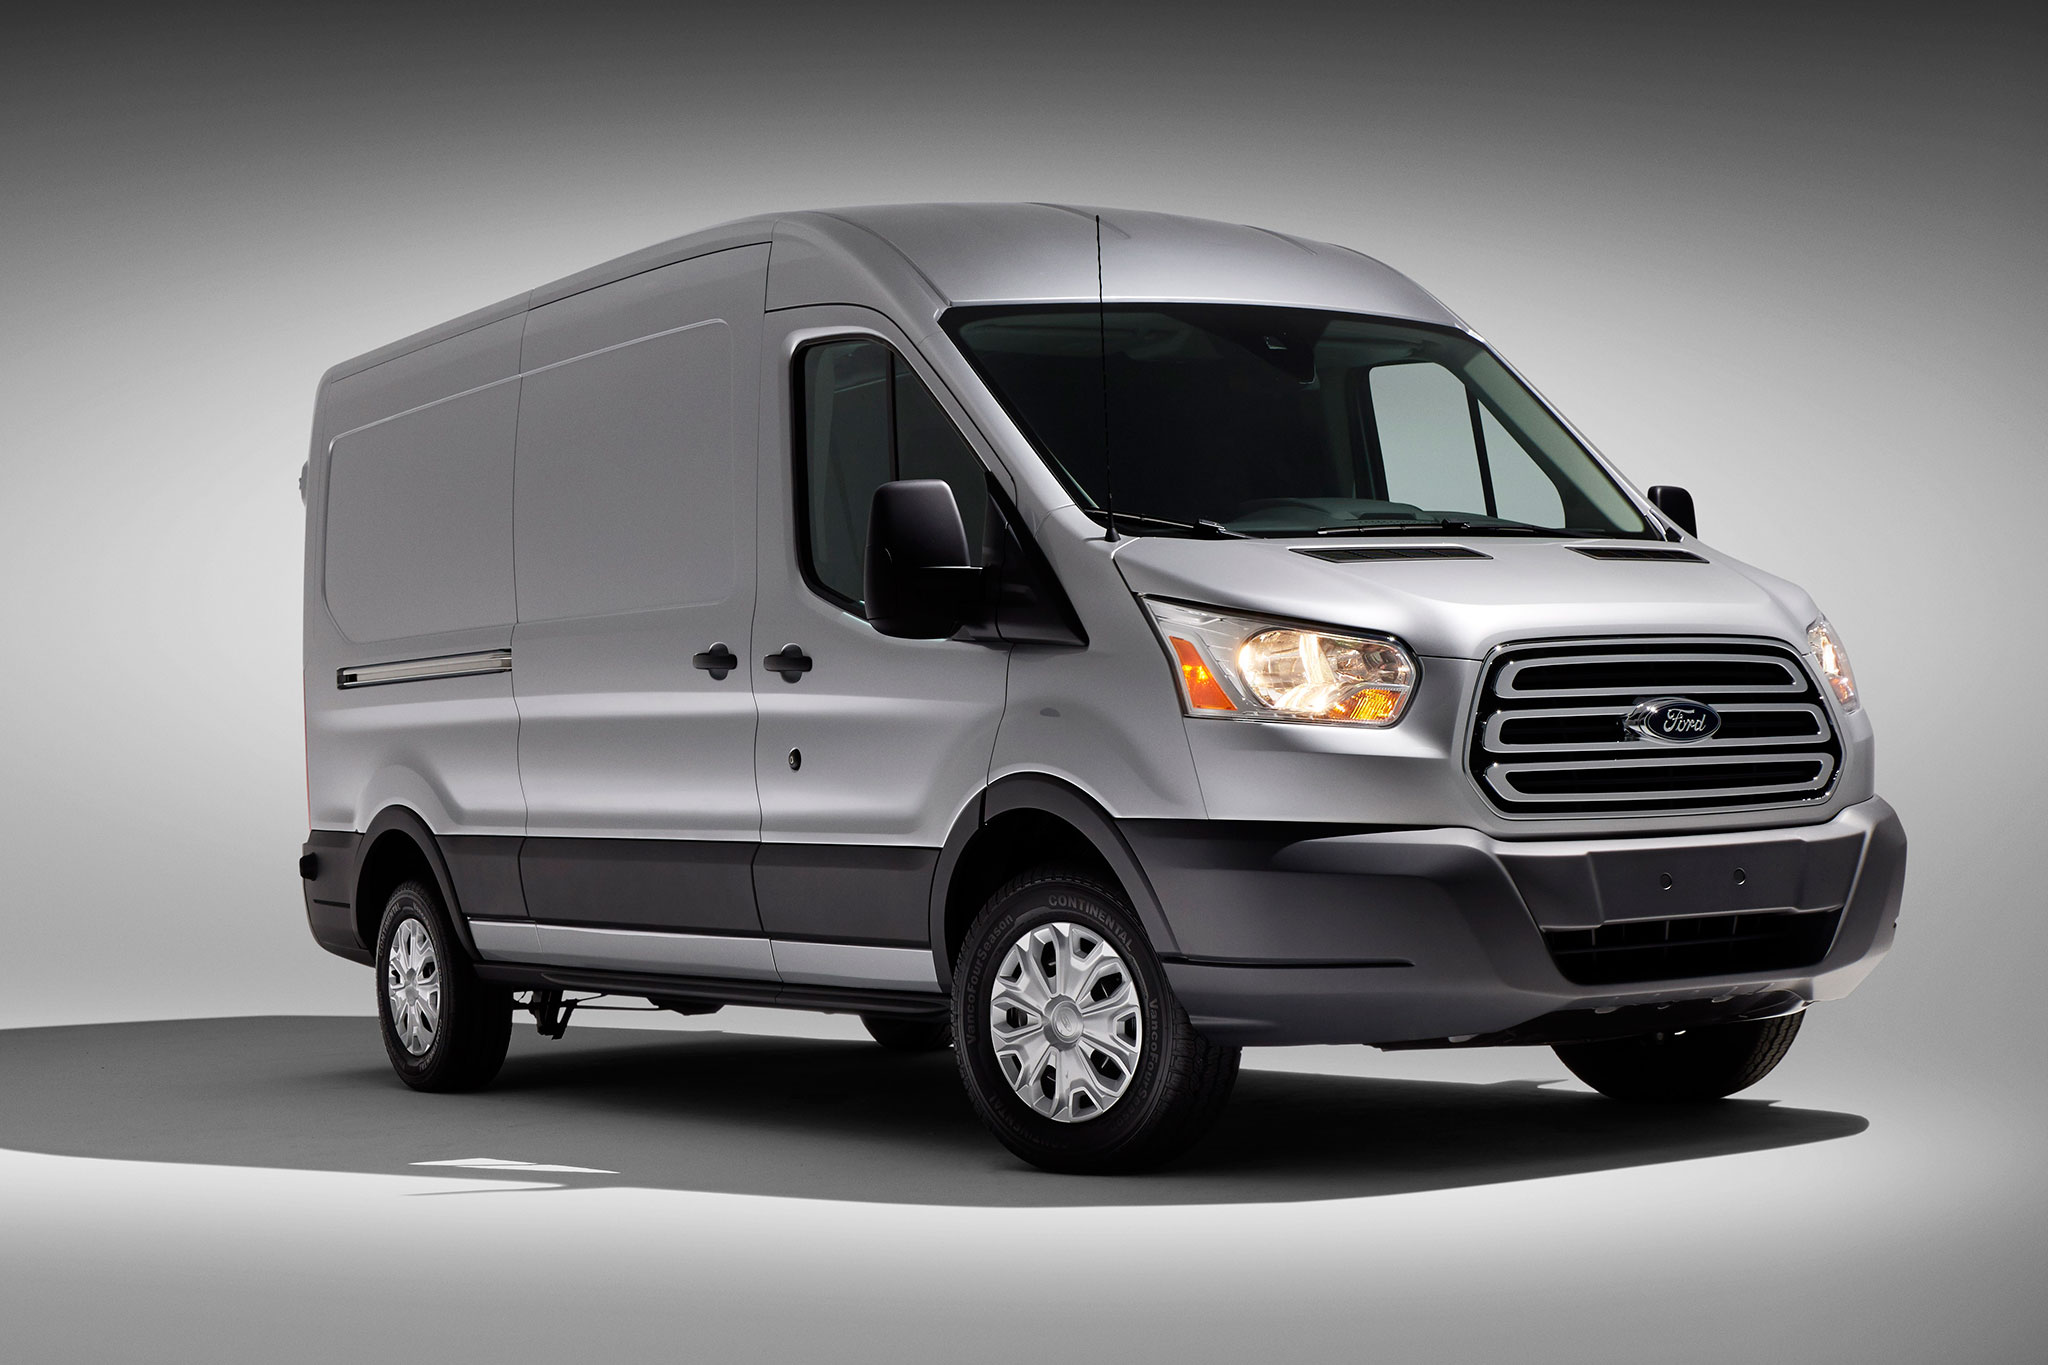 2014 Ford Transit Three Quarters View1